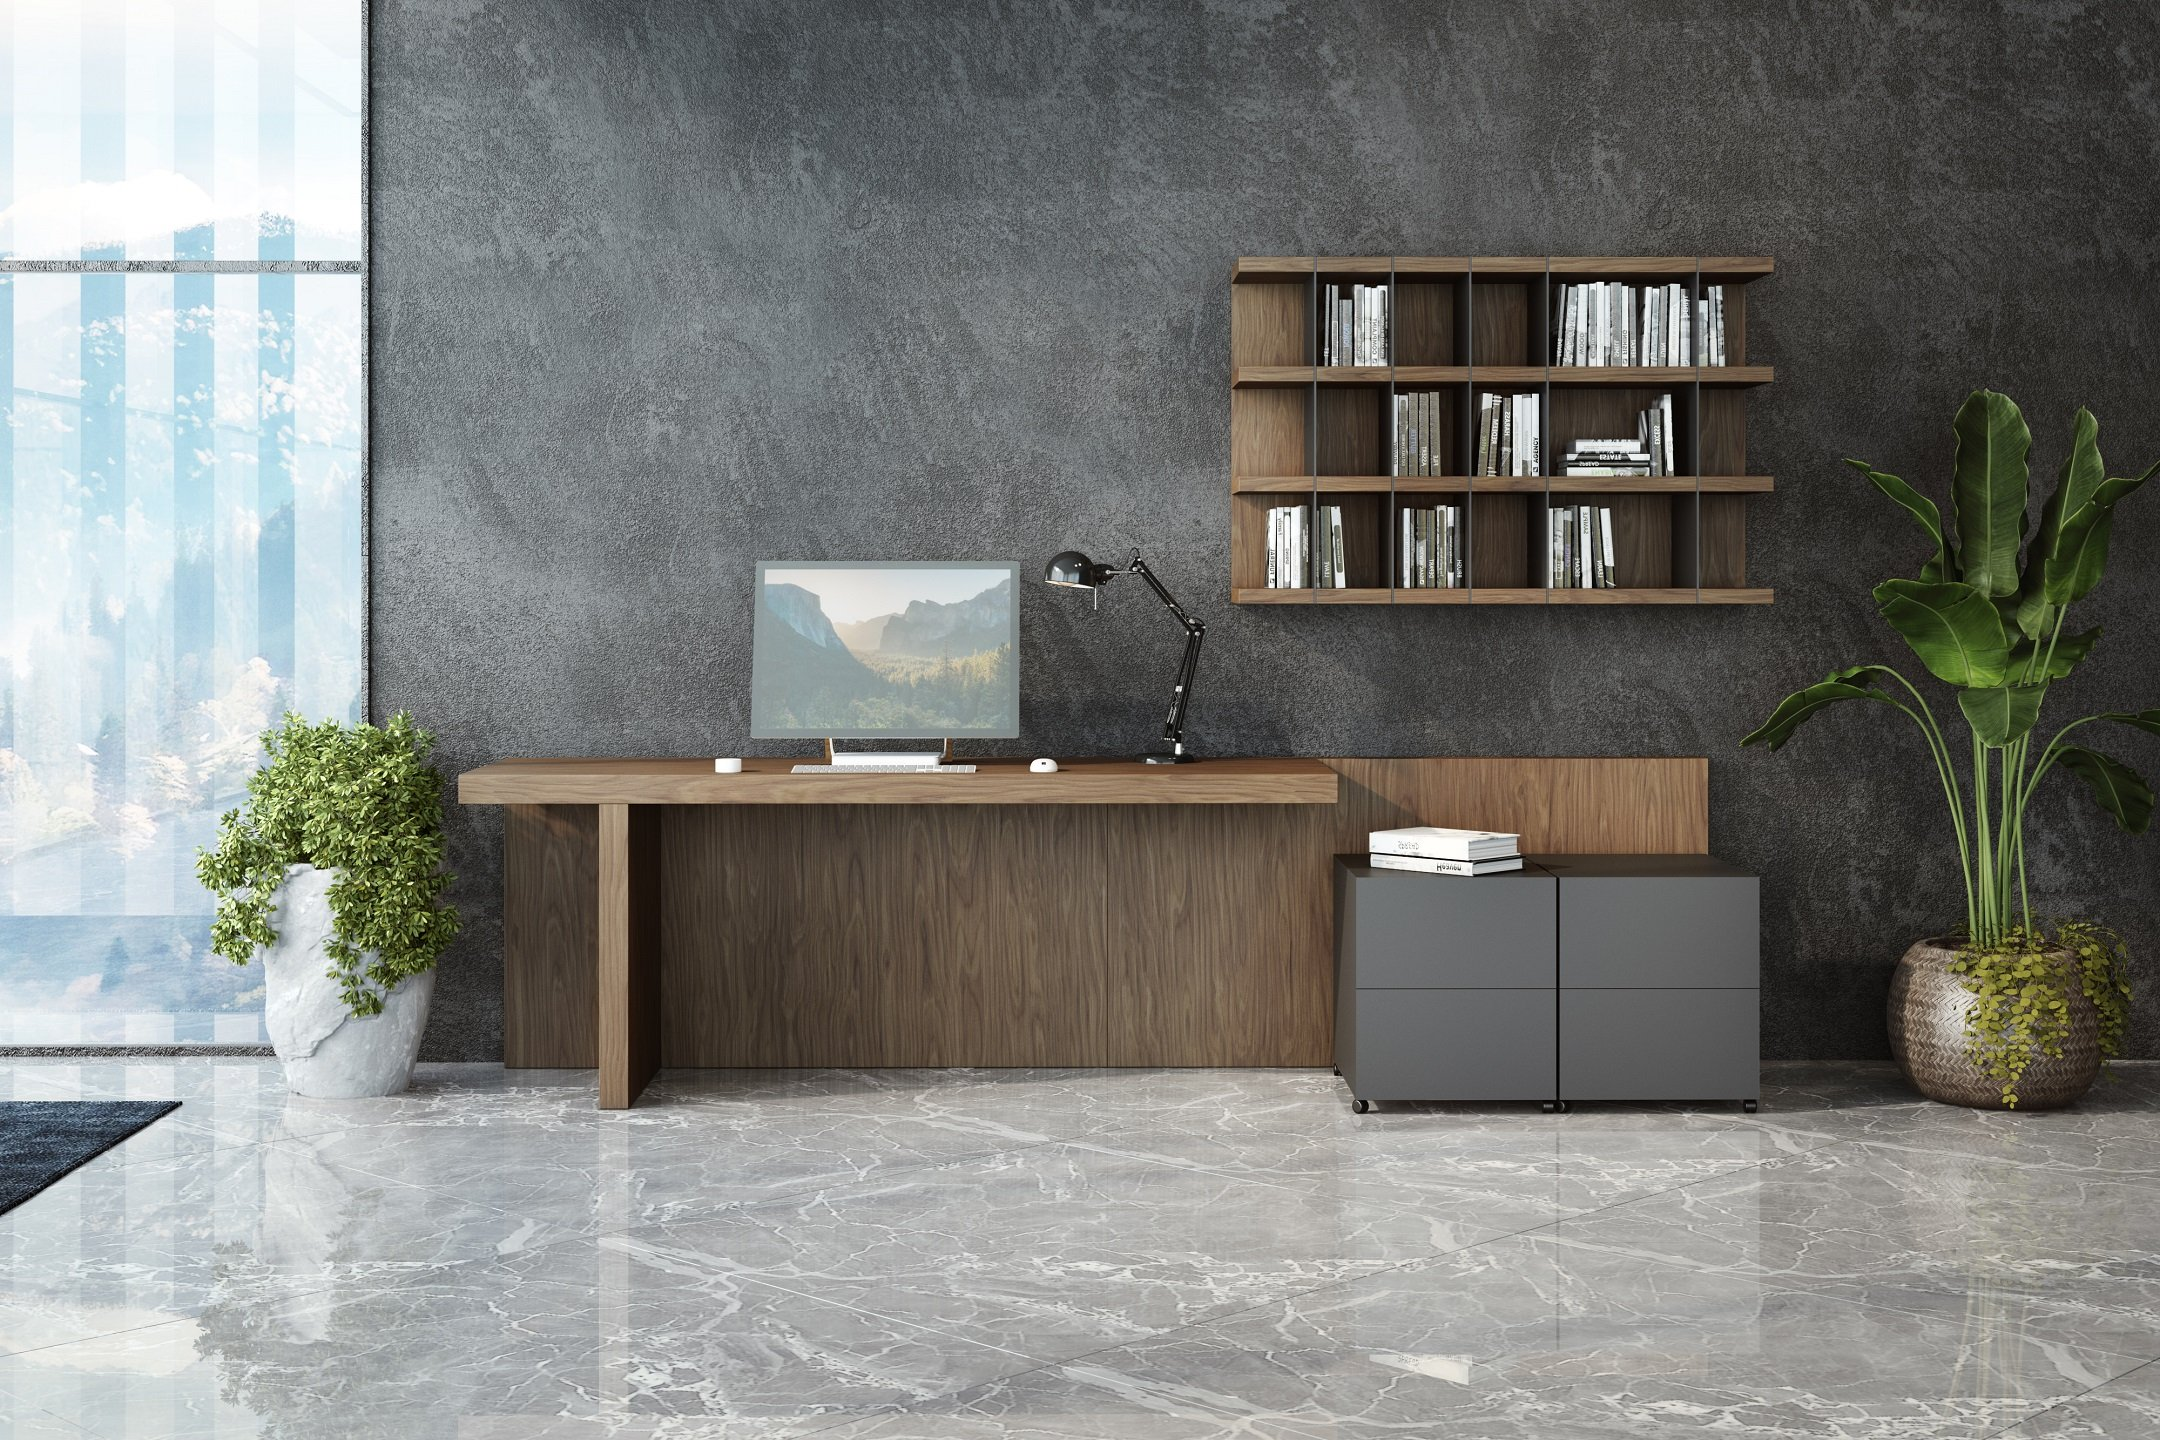 3D Visualization of Home Office with Modern Furnishings